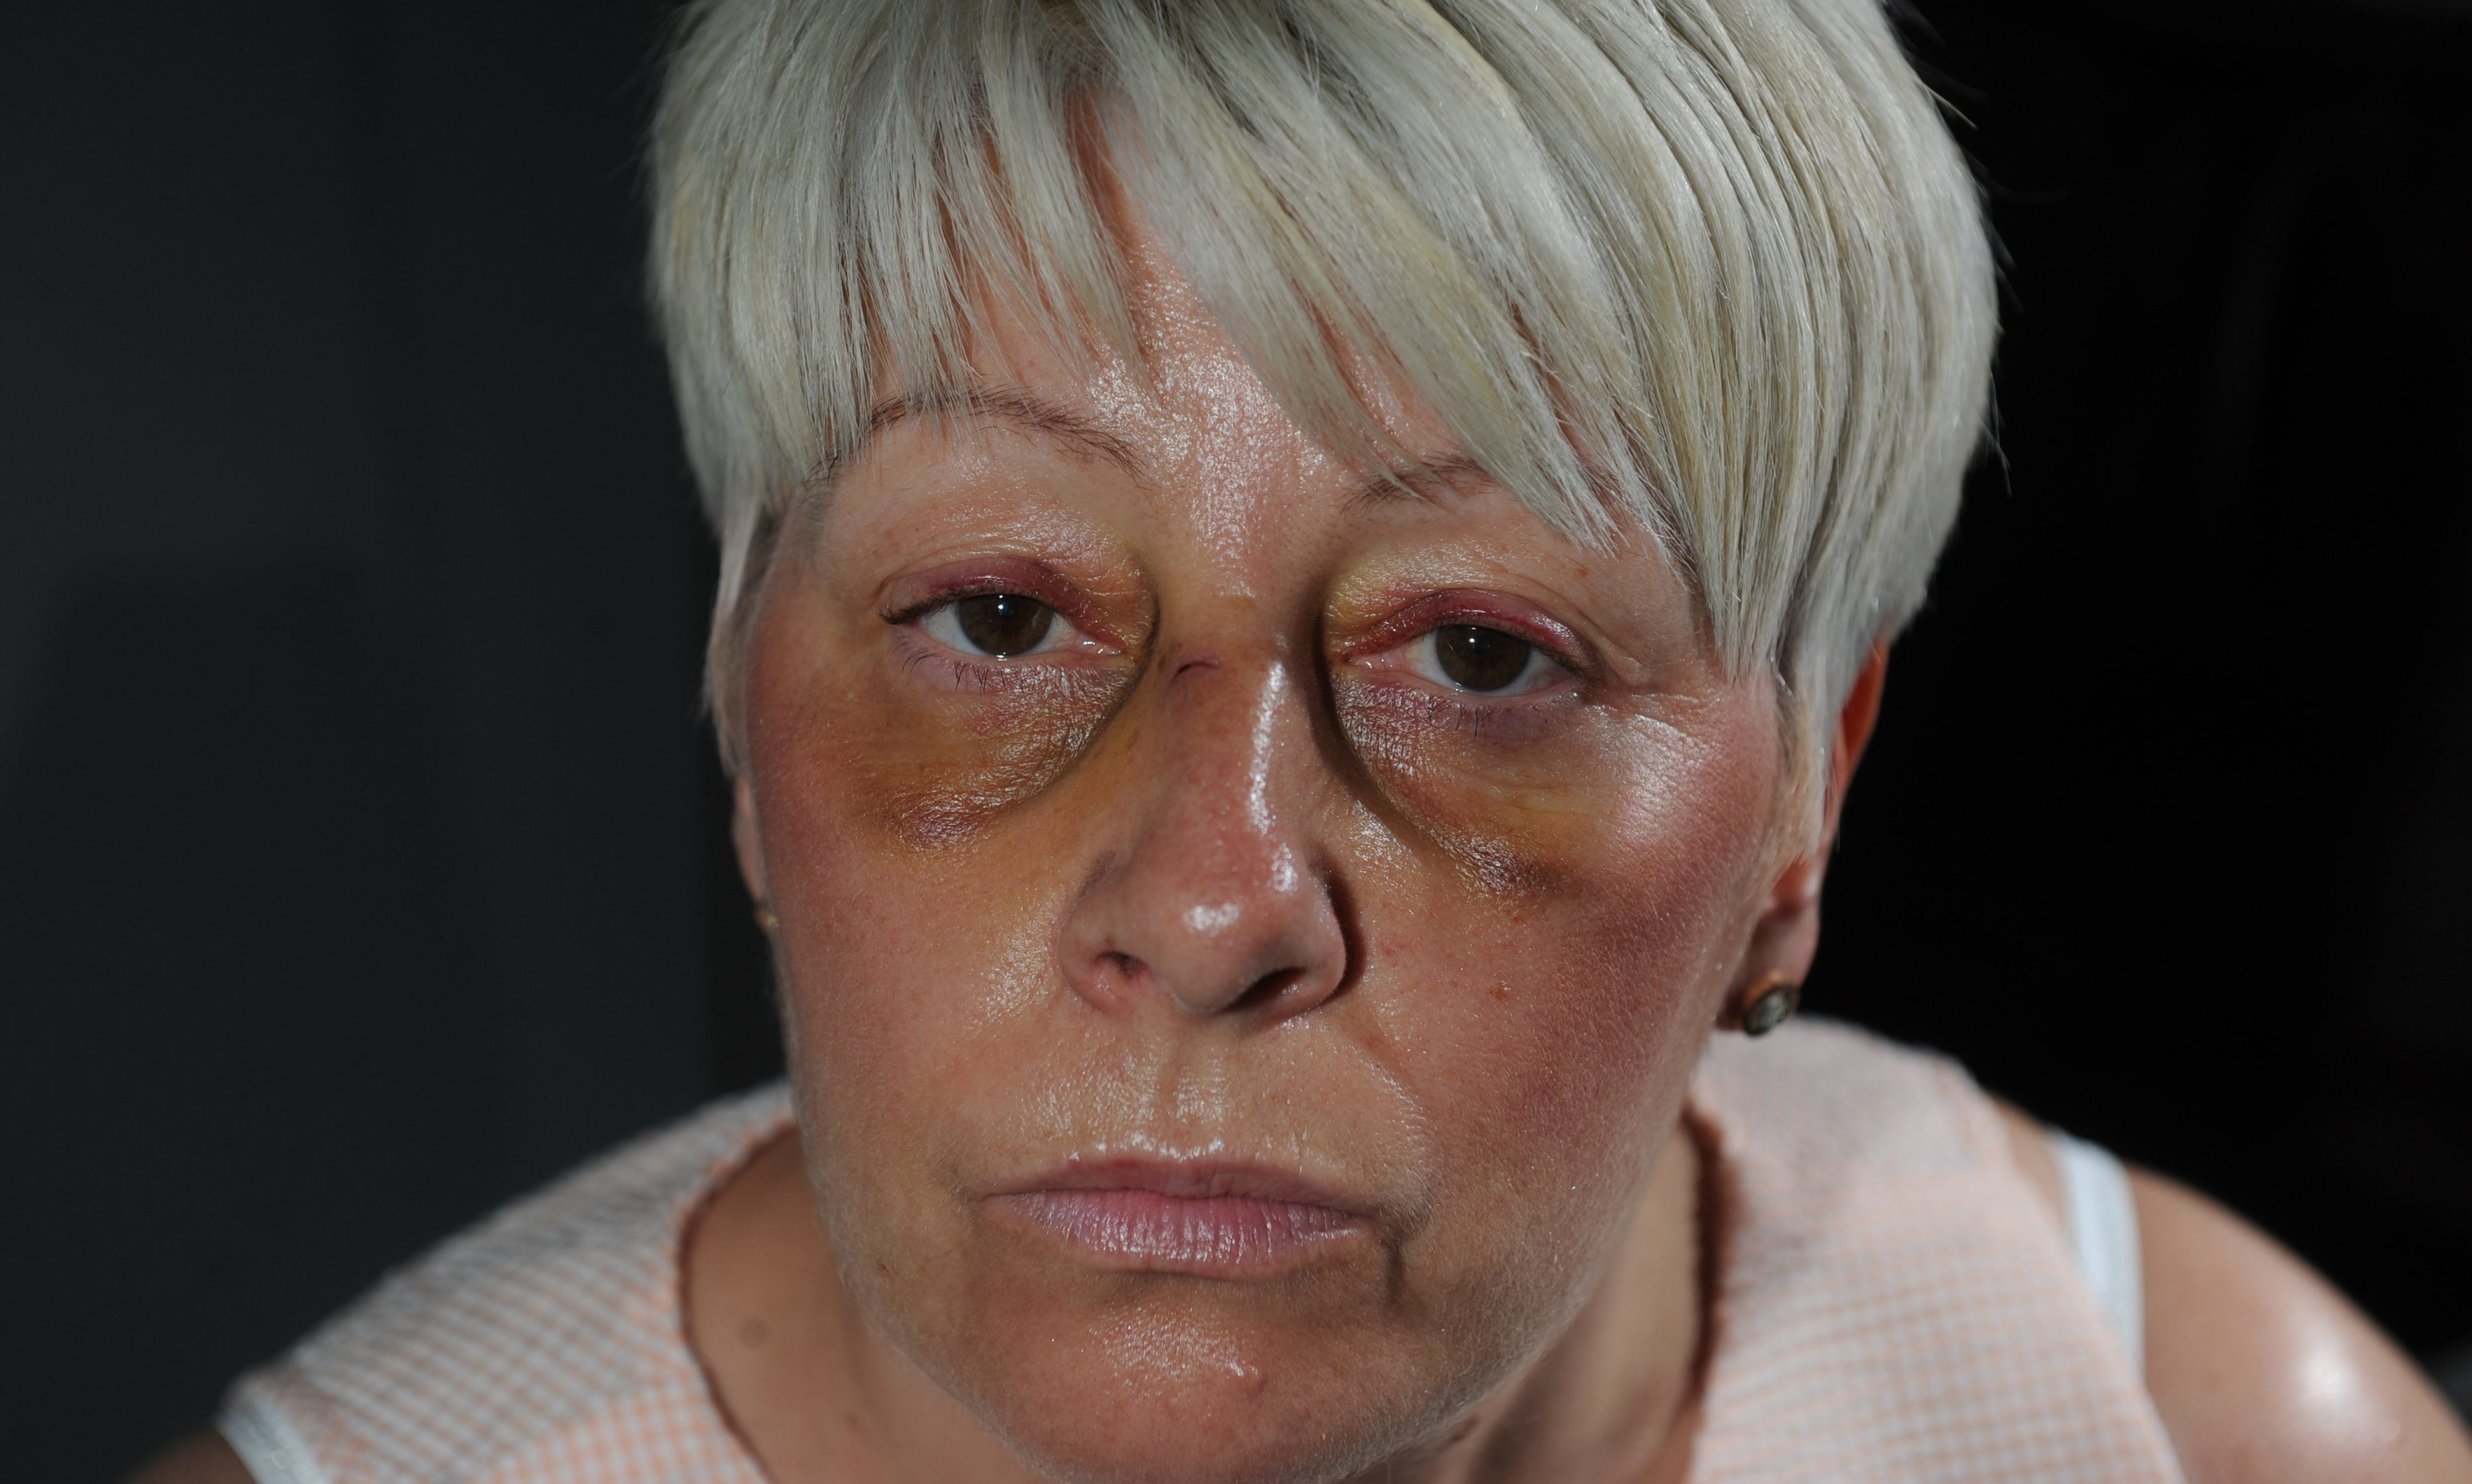 Madelaine Smith was attacked by Hamilton fans last Thursday after the playoff match outside Tannadice